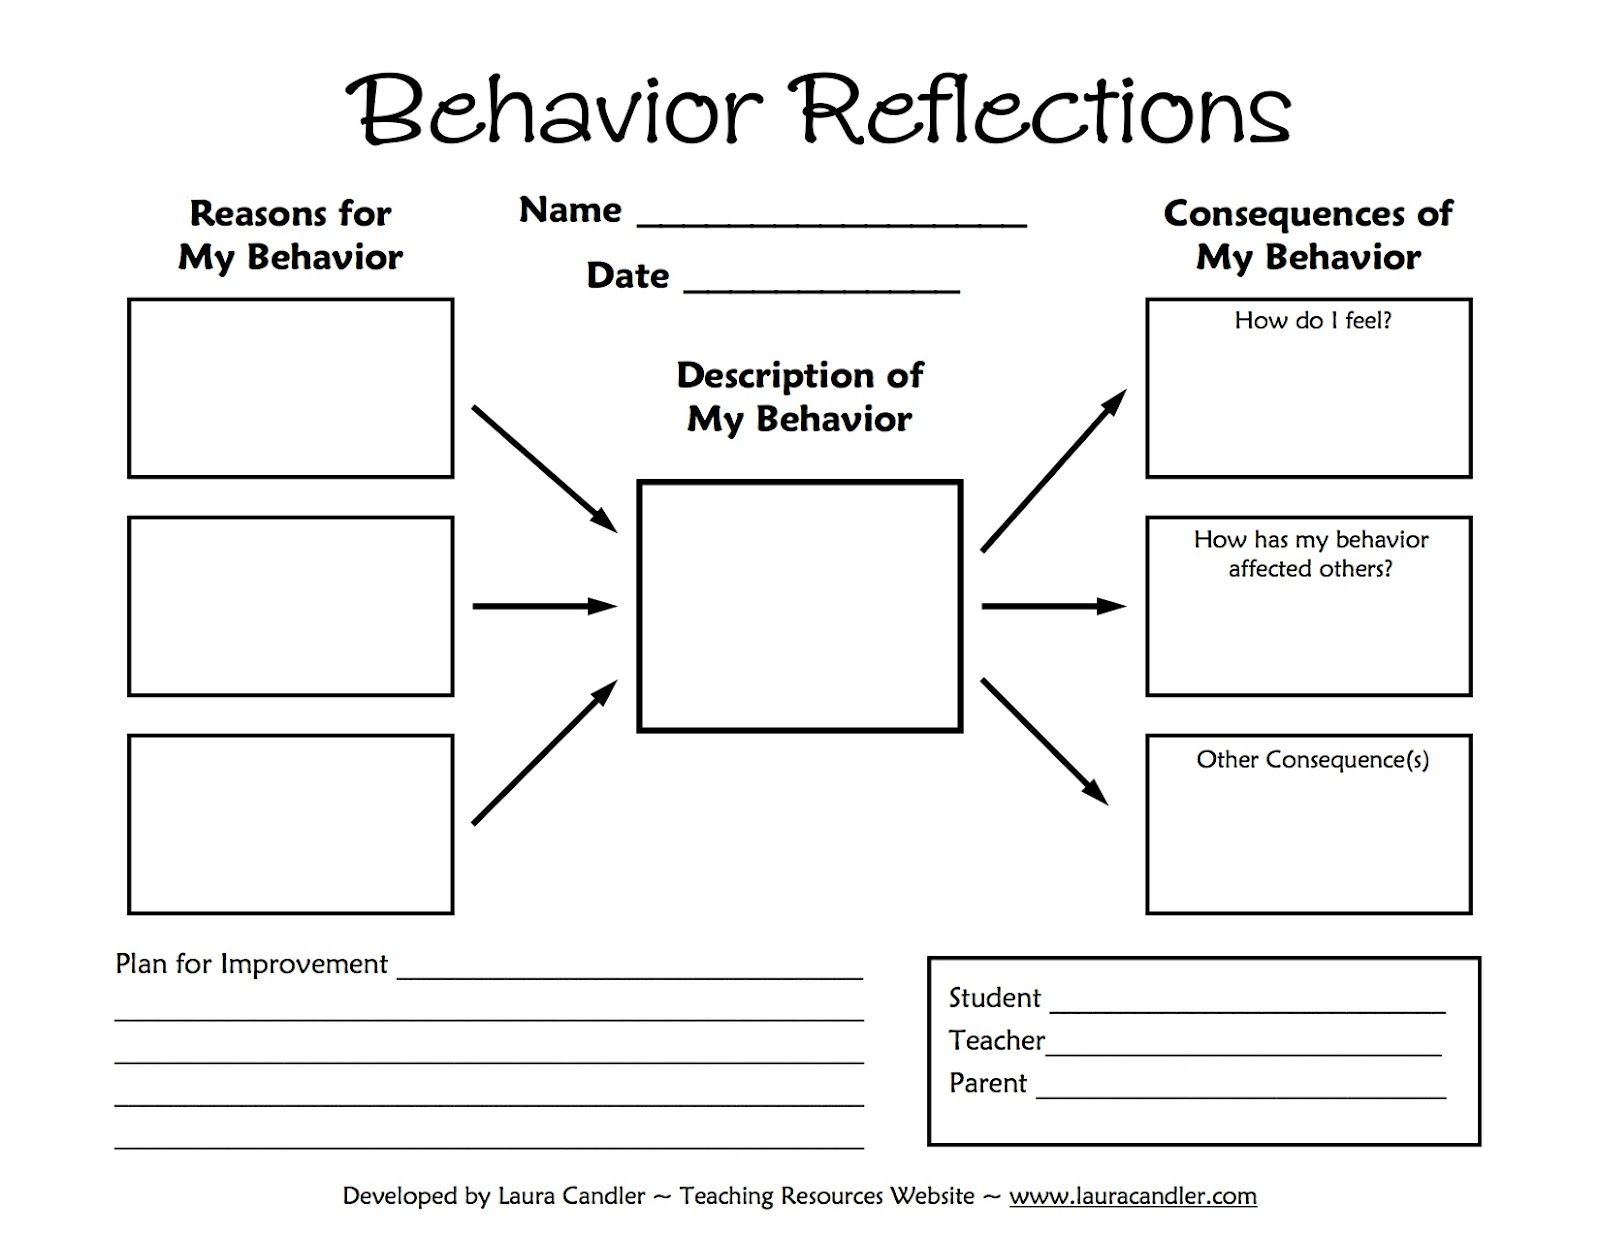 Tween Teaching Behavior Reflections Sheet This Is Very